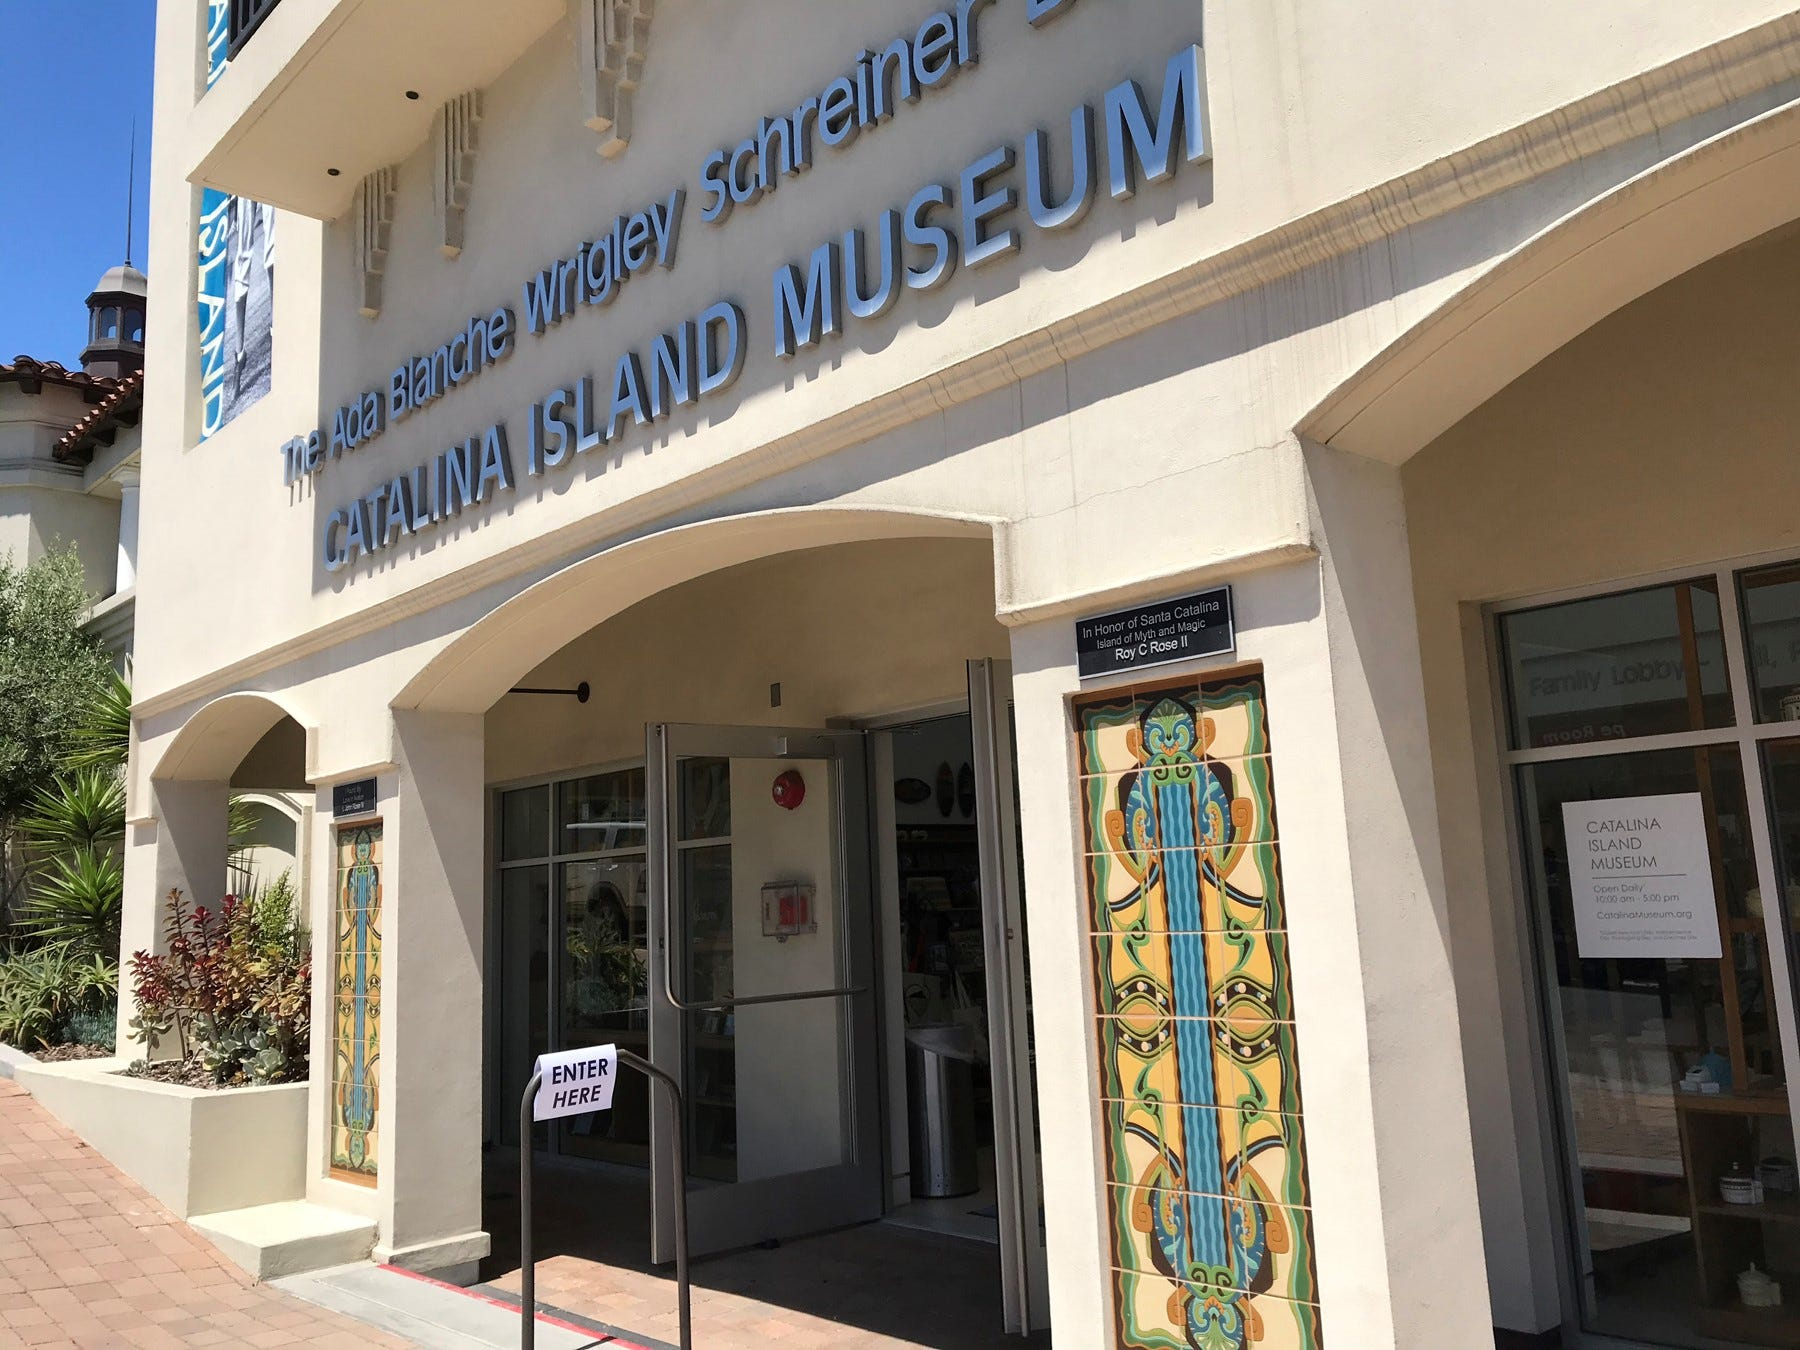 Disneyland isn't all that's closed in California: Museum advocates push back against 'restrictive' COVID-19 reopening rules